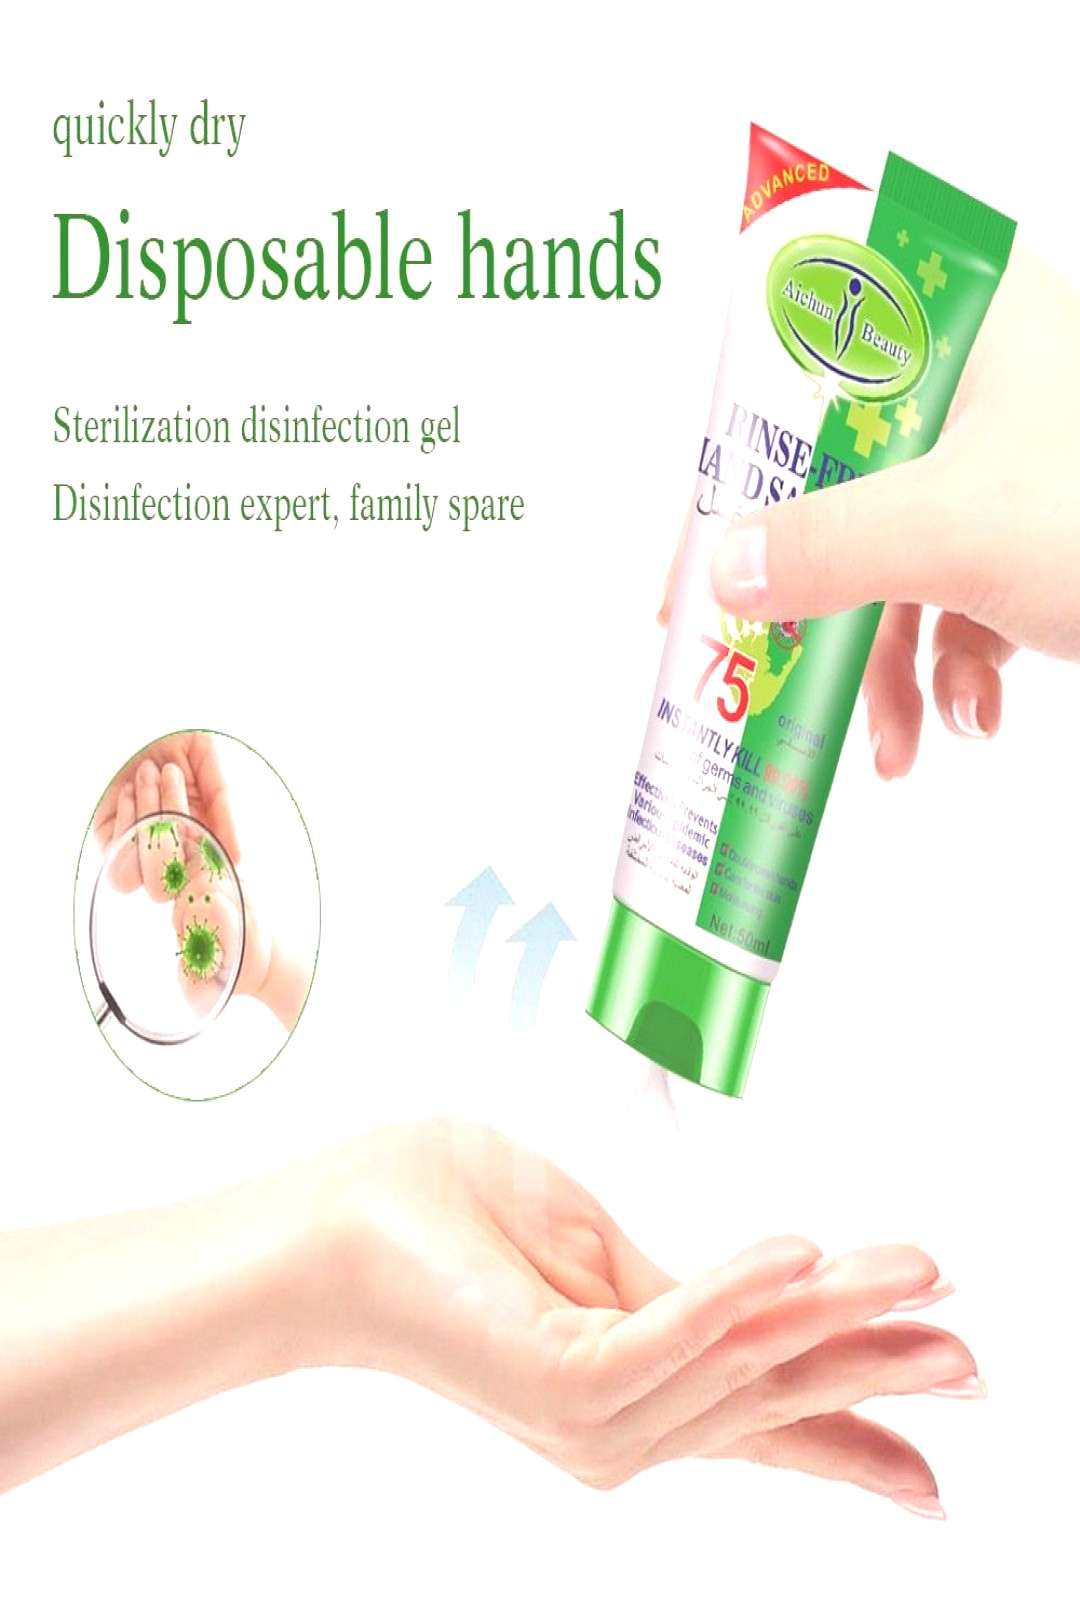 Disposable Hand Sanitizer 75% Alcohol Sterilization Bactericide Antibacterial Disinfection Gel Pers